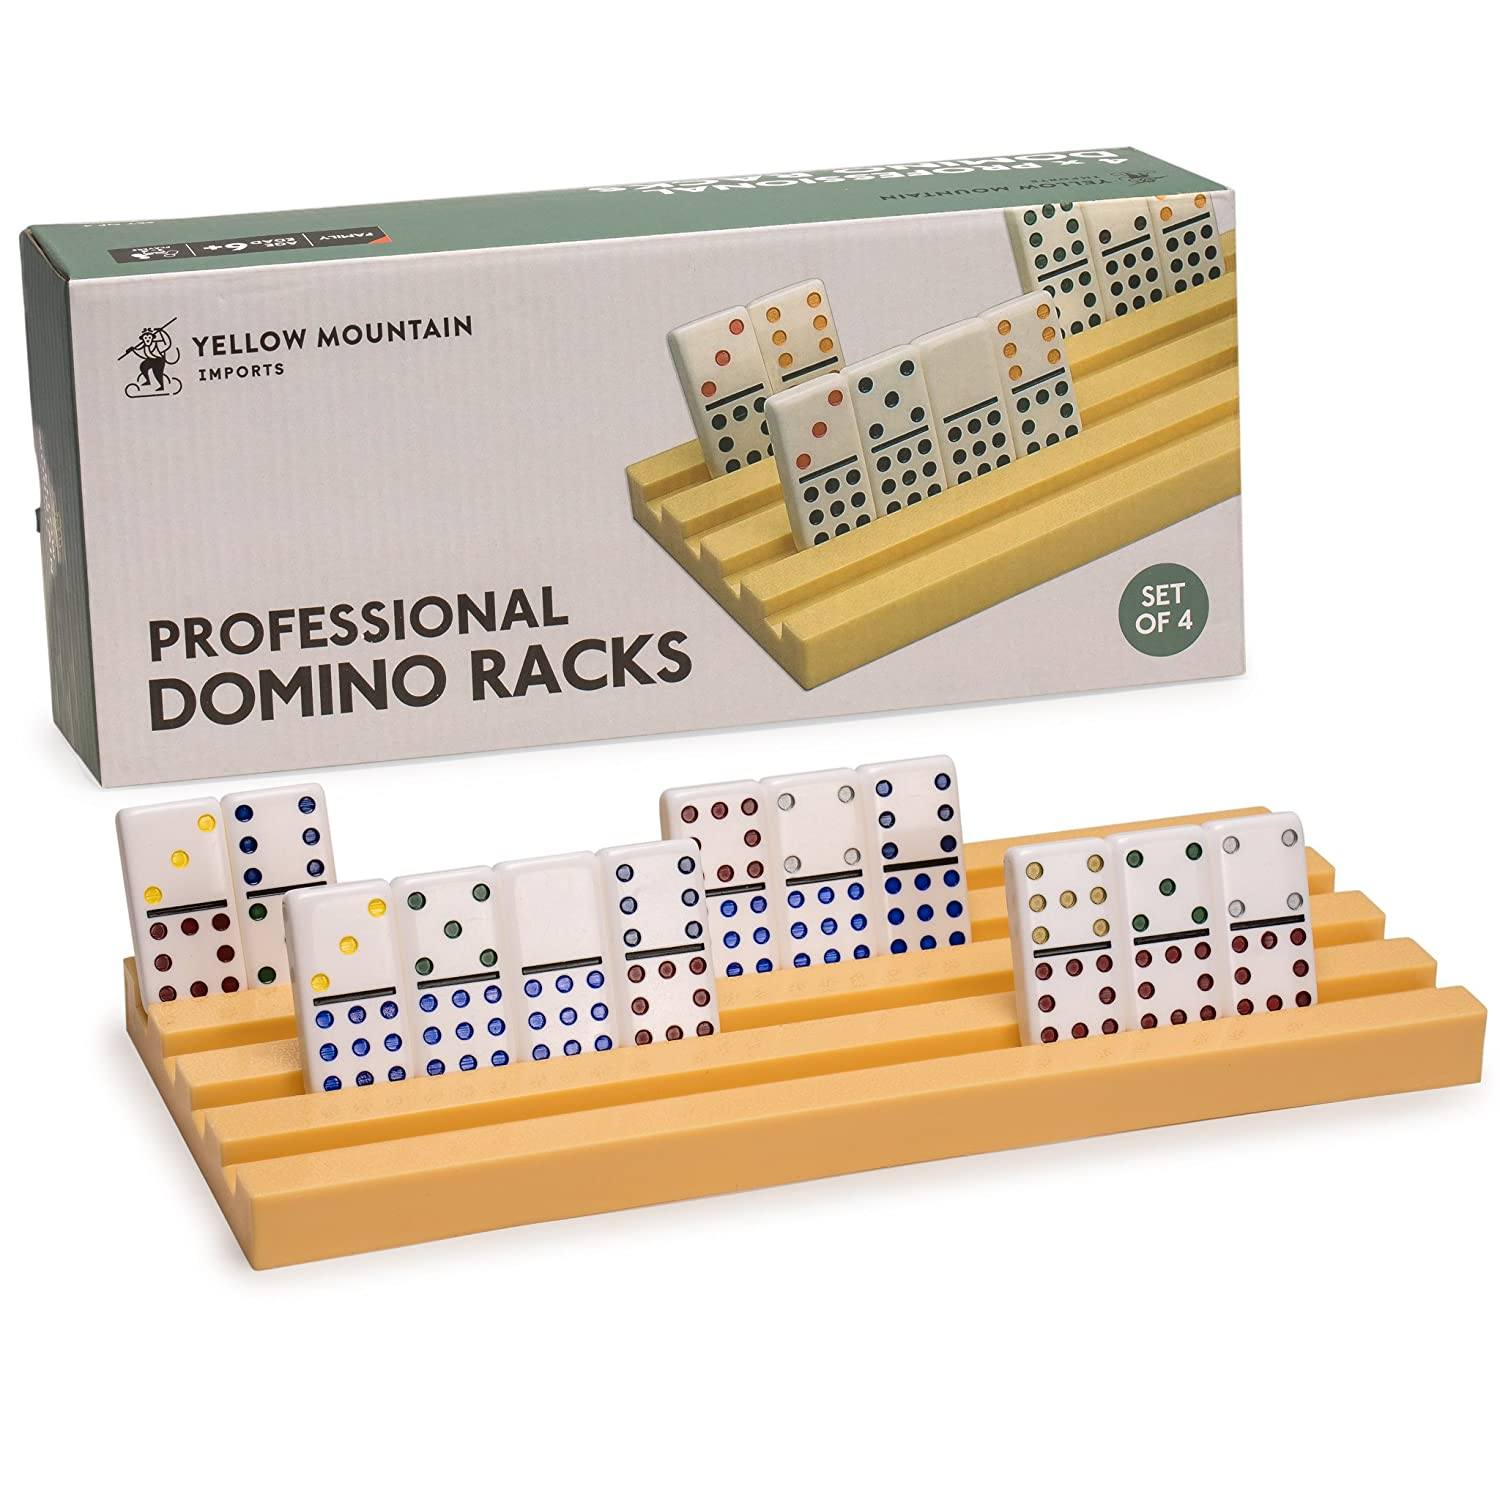 """Yellow Mountain Imports Professional Domino Racks/ Trays (Set of 4)- Fits Perfectly for Professional Size Dominoes 2"""" x 1"""" x 3/8"""" Thick (50mm x 25mm x 9.5mm) - Dominos NOT Included"""